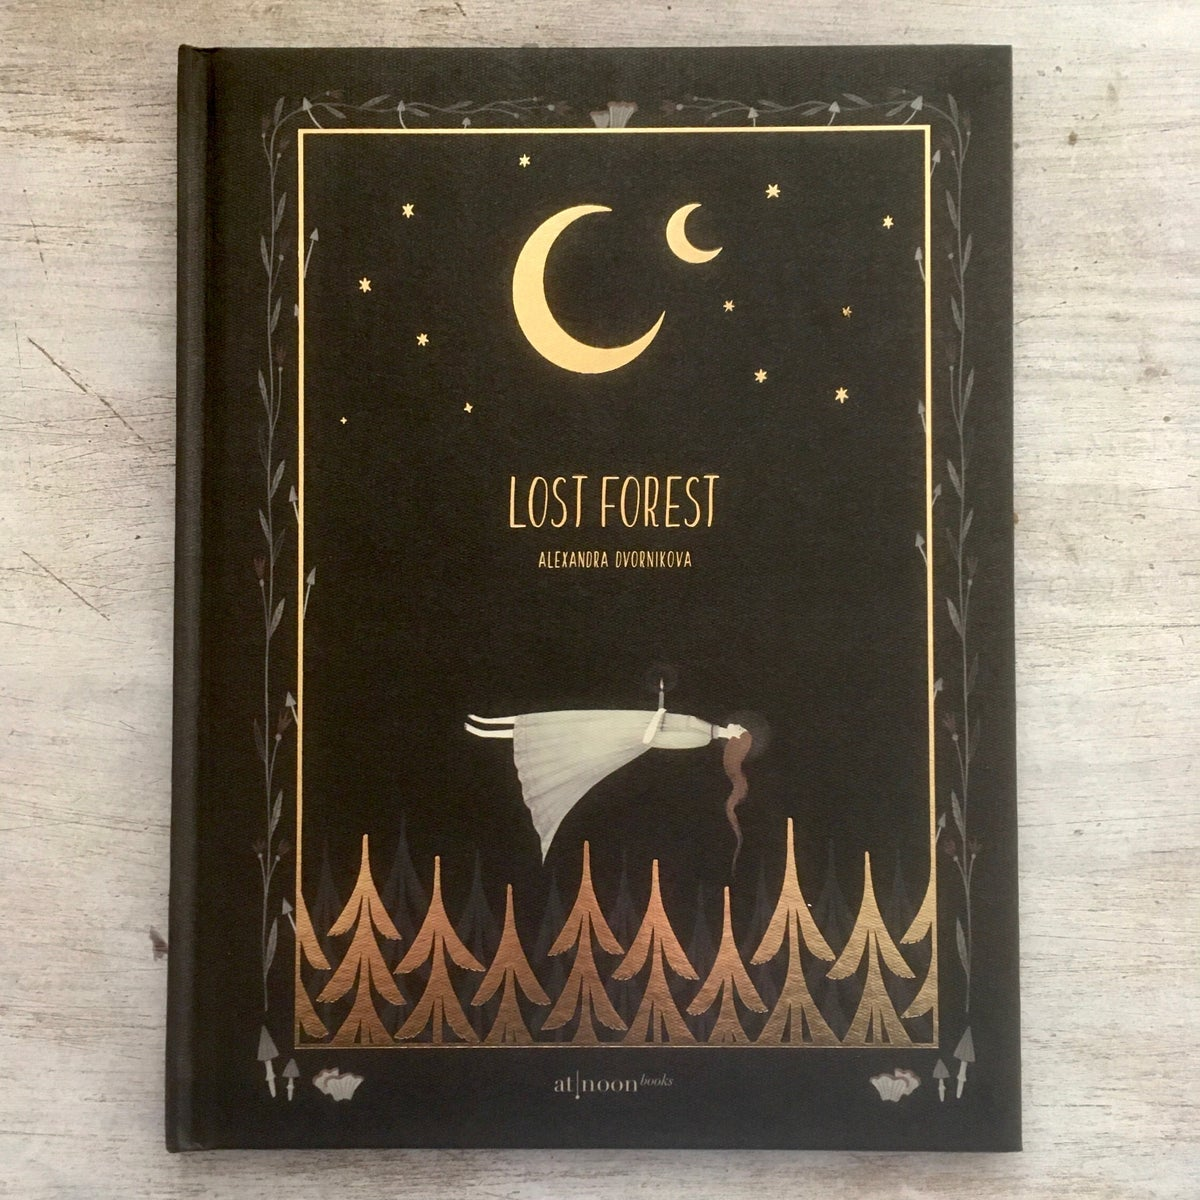 Lost Forest- at noon books